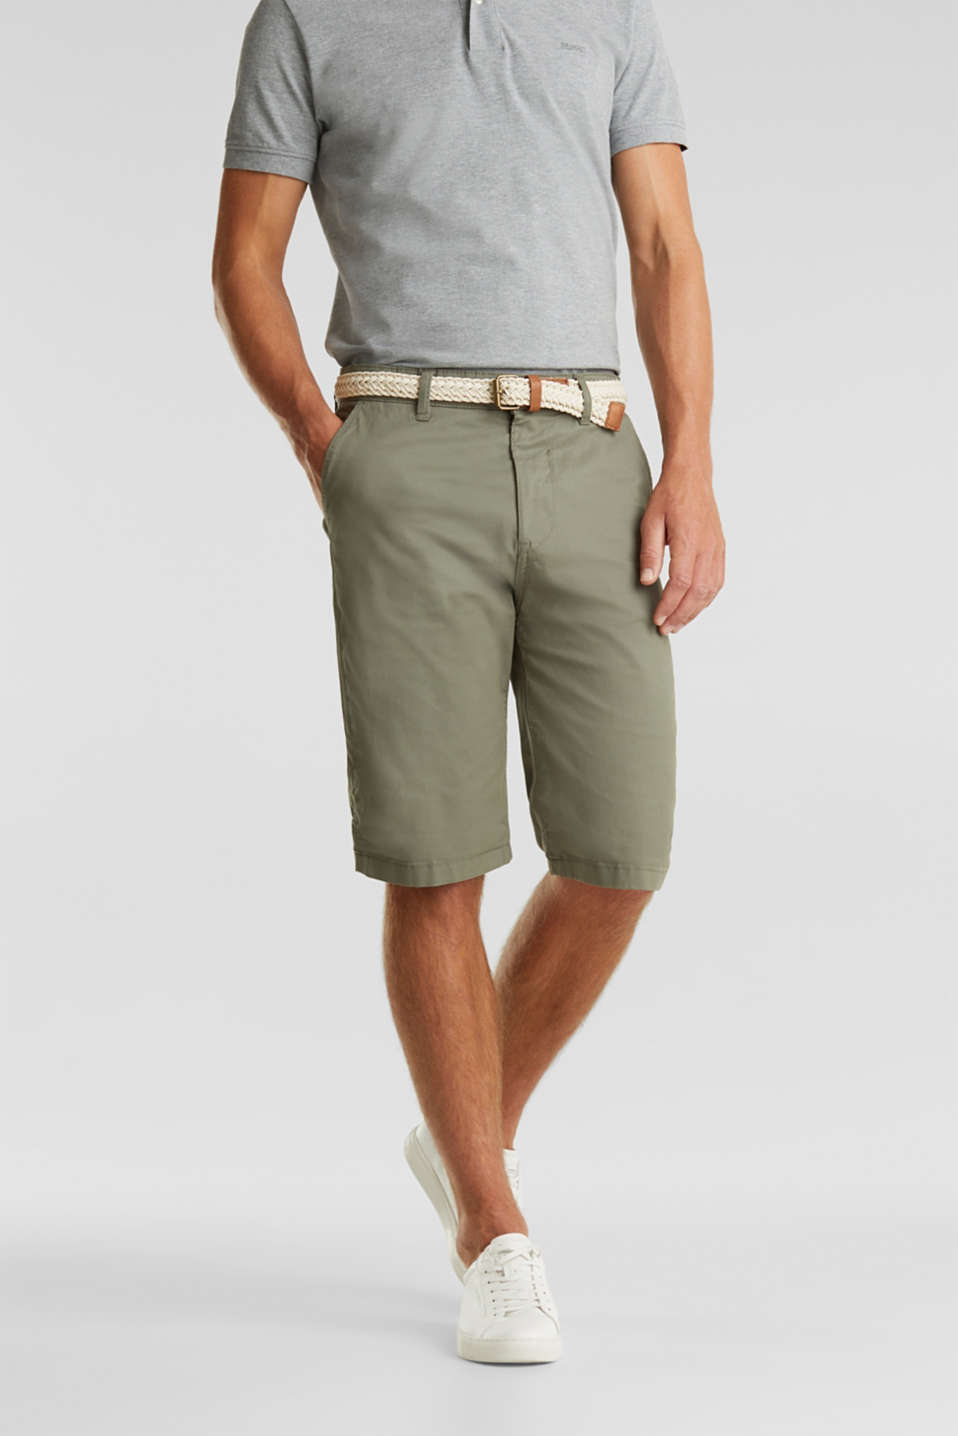 Esprit - Stretch cotton shorts with a belt